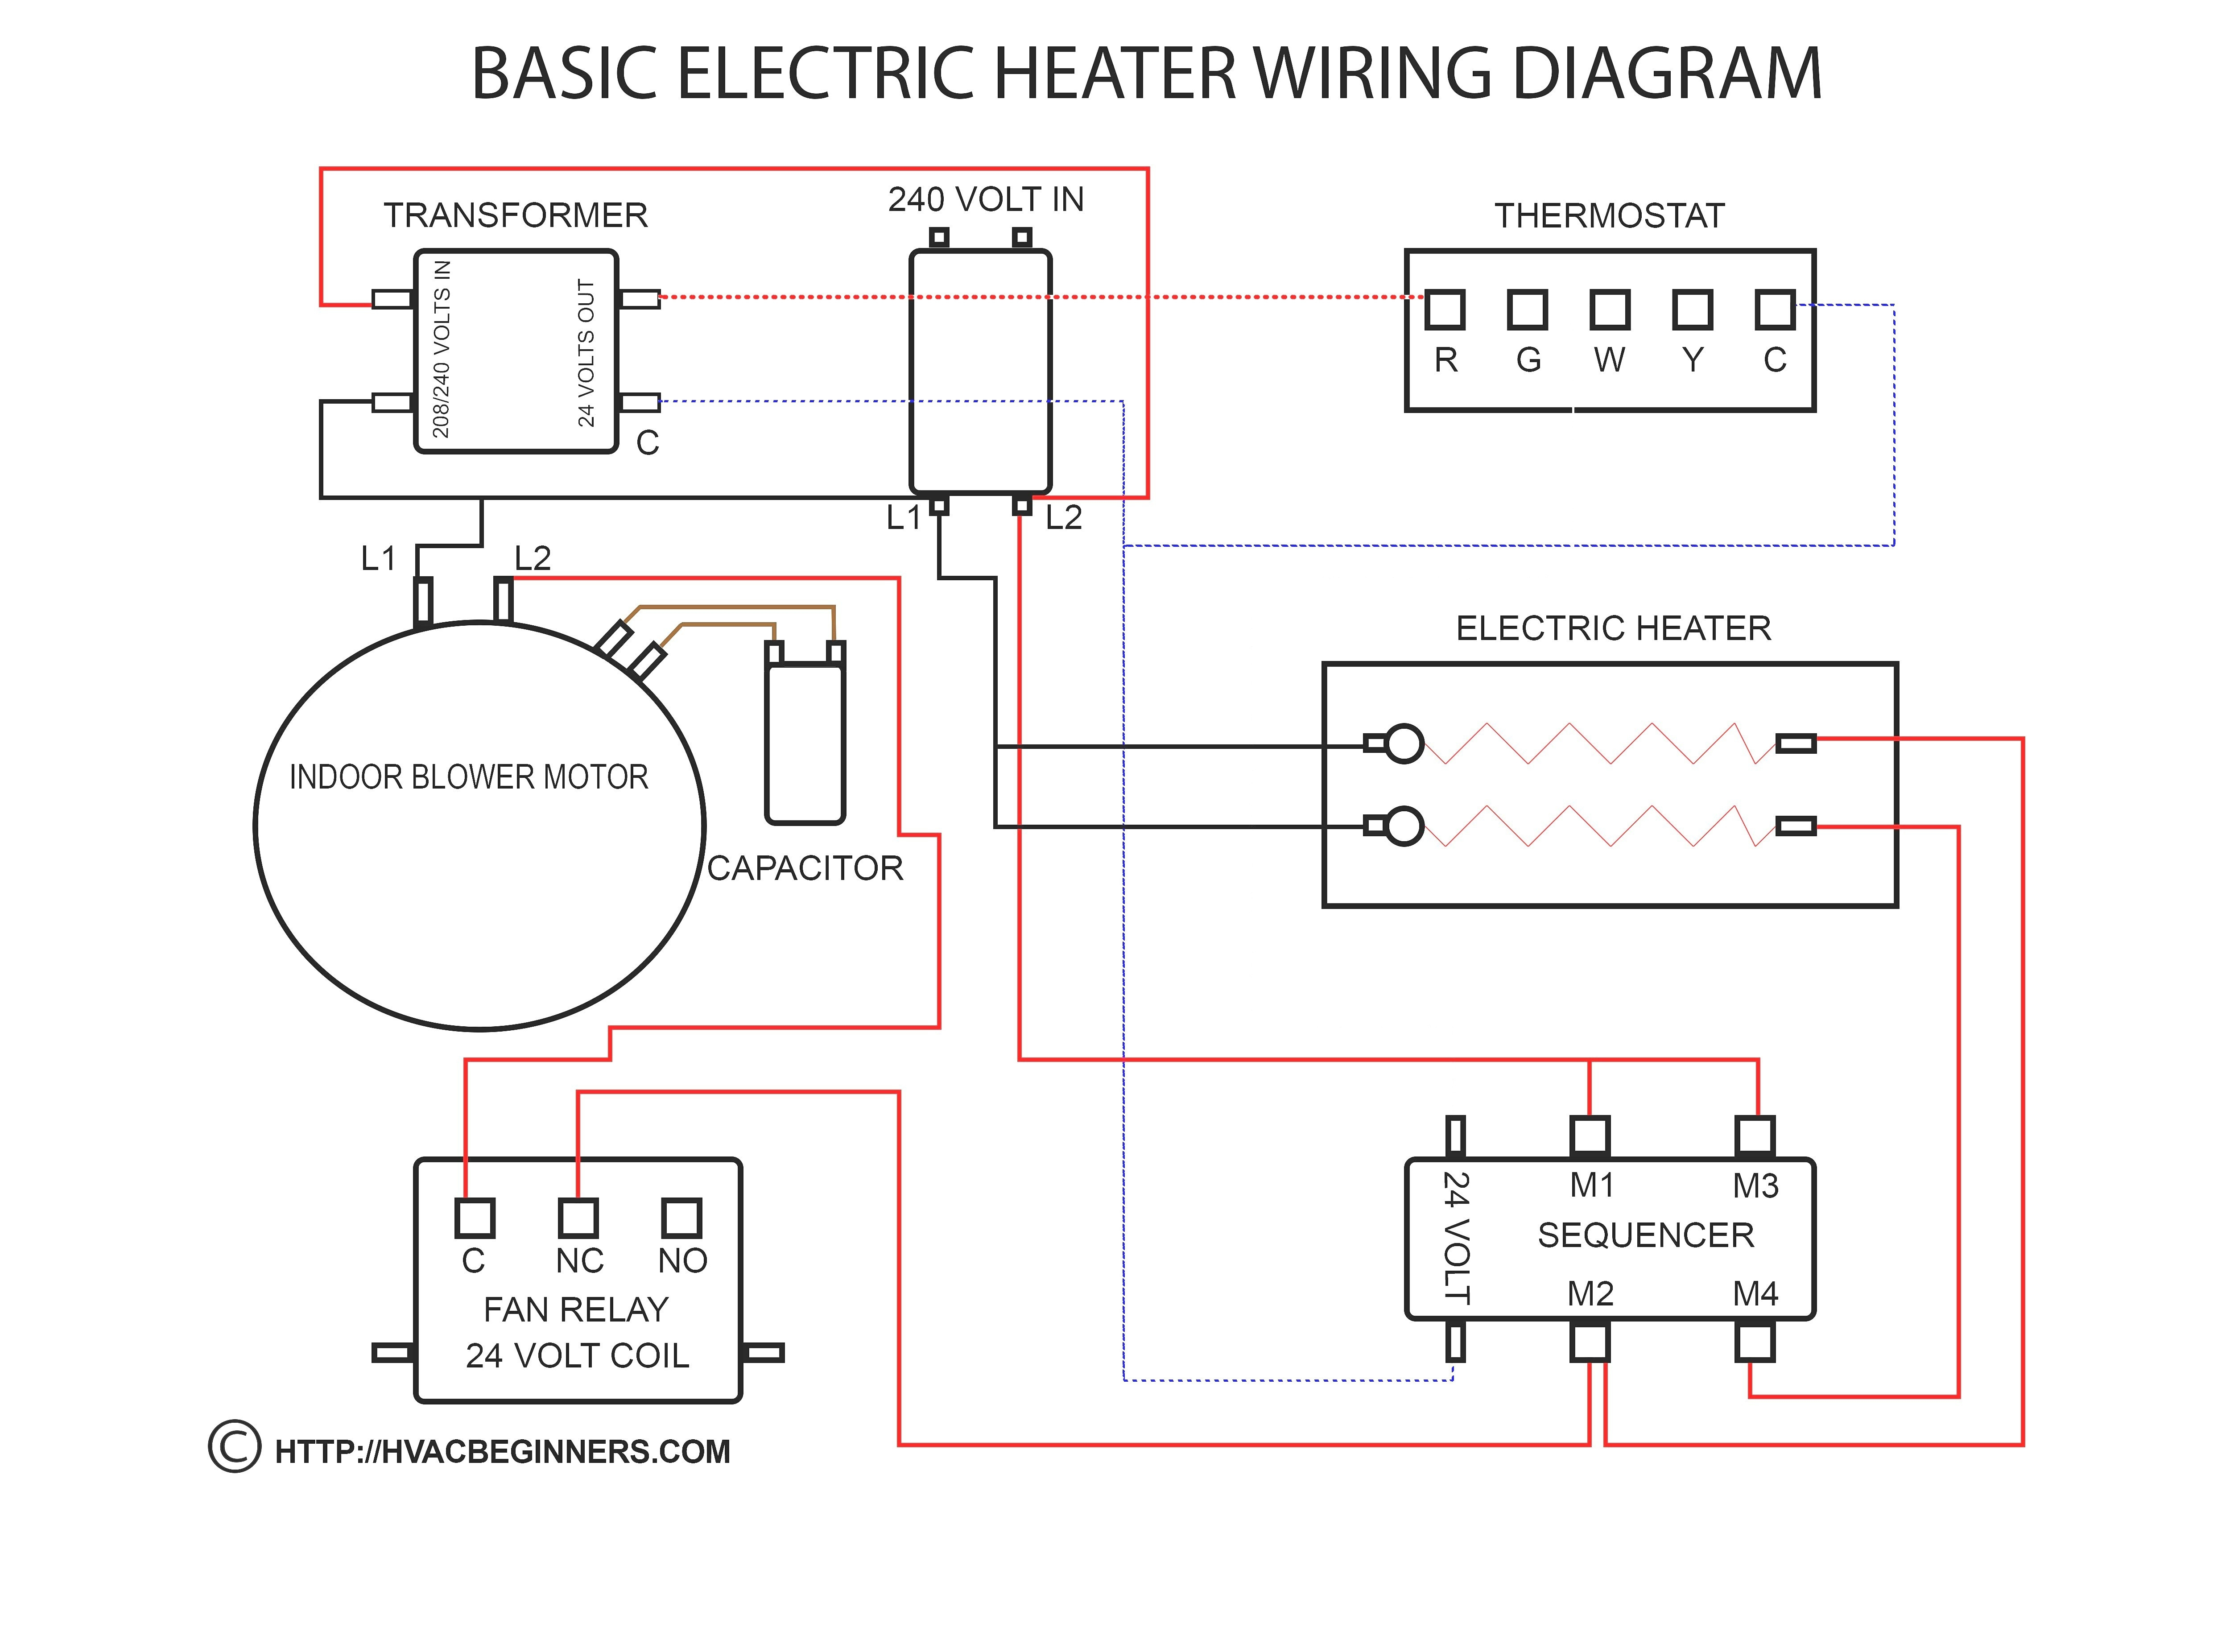 goodman heat pump low voltage wiring diagram free wiring. Black Bedroom Furniture Sets. Home Design Ideas